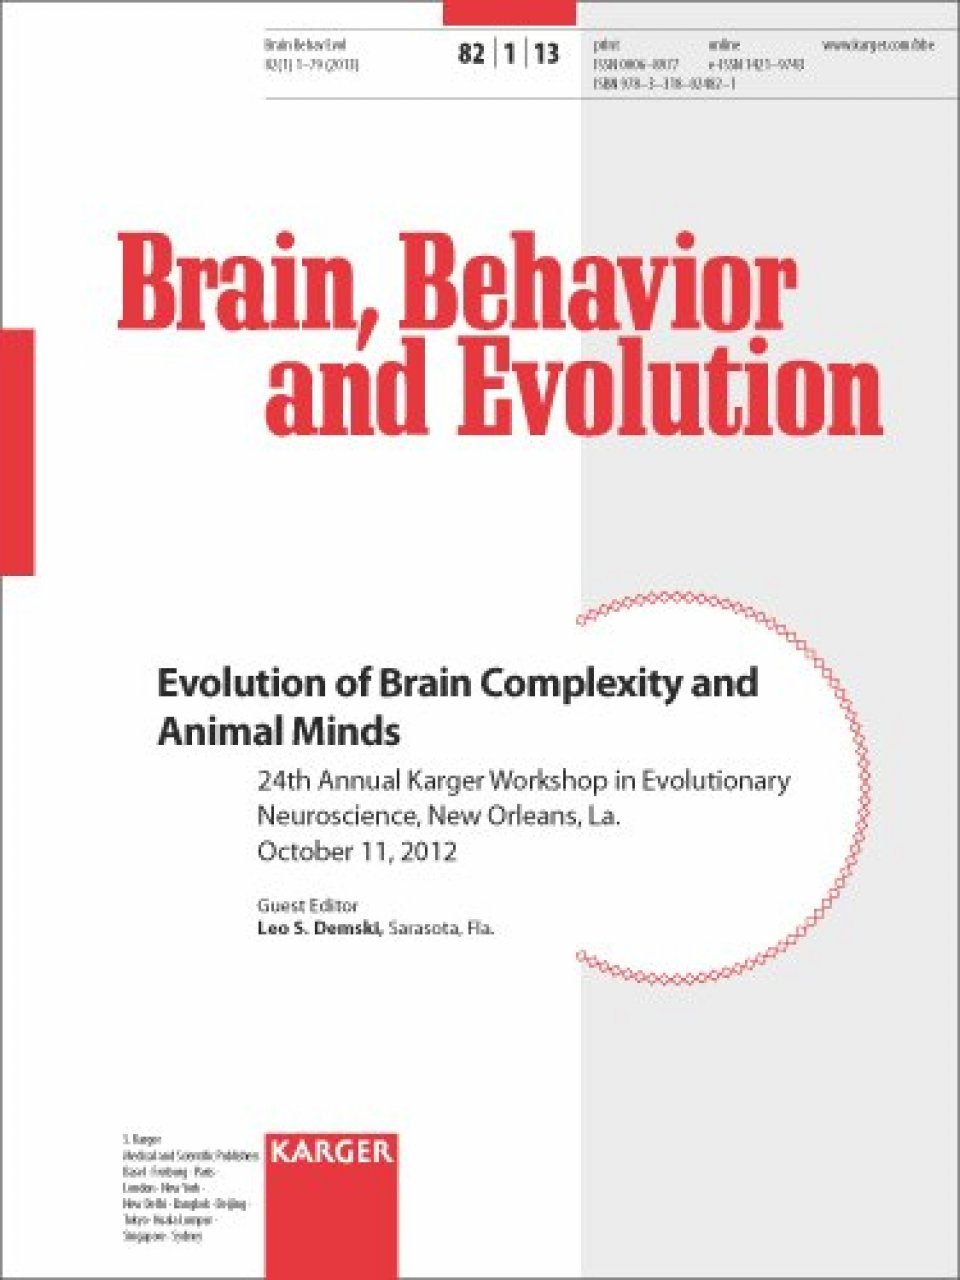 Evolution of Brain Complexity and Animal Minds